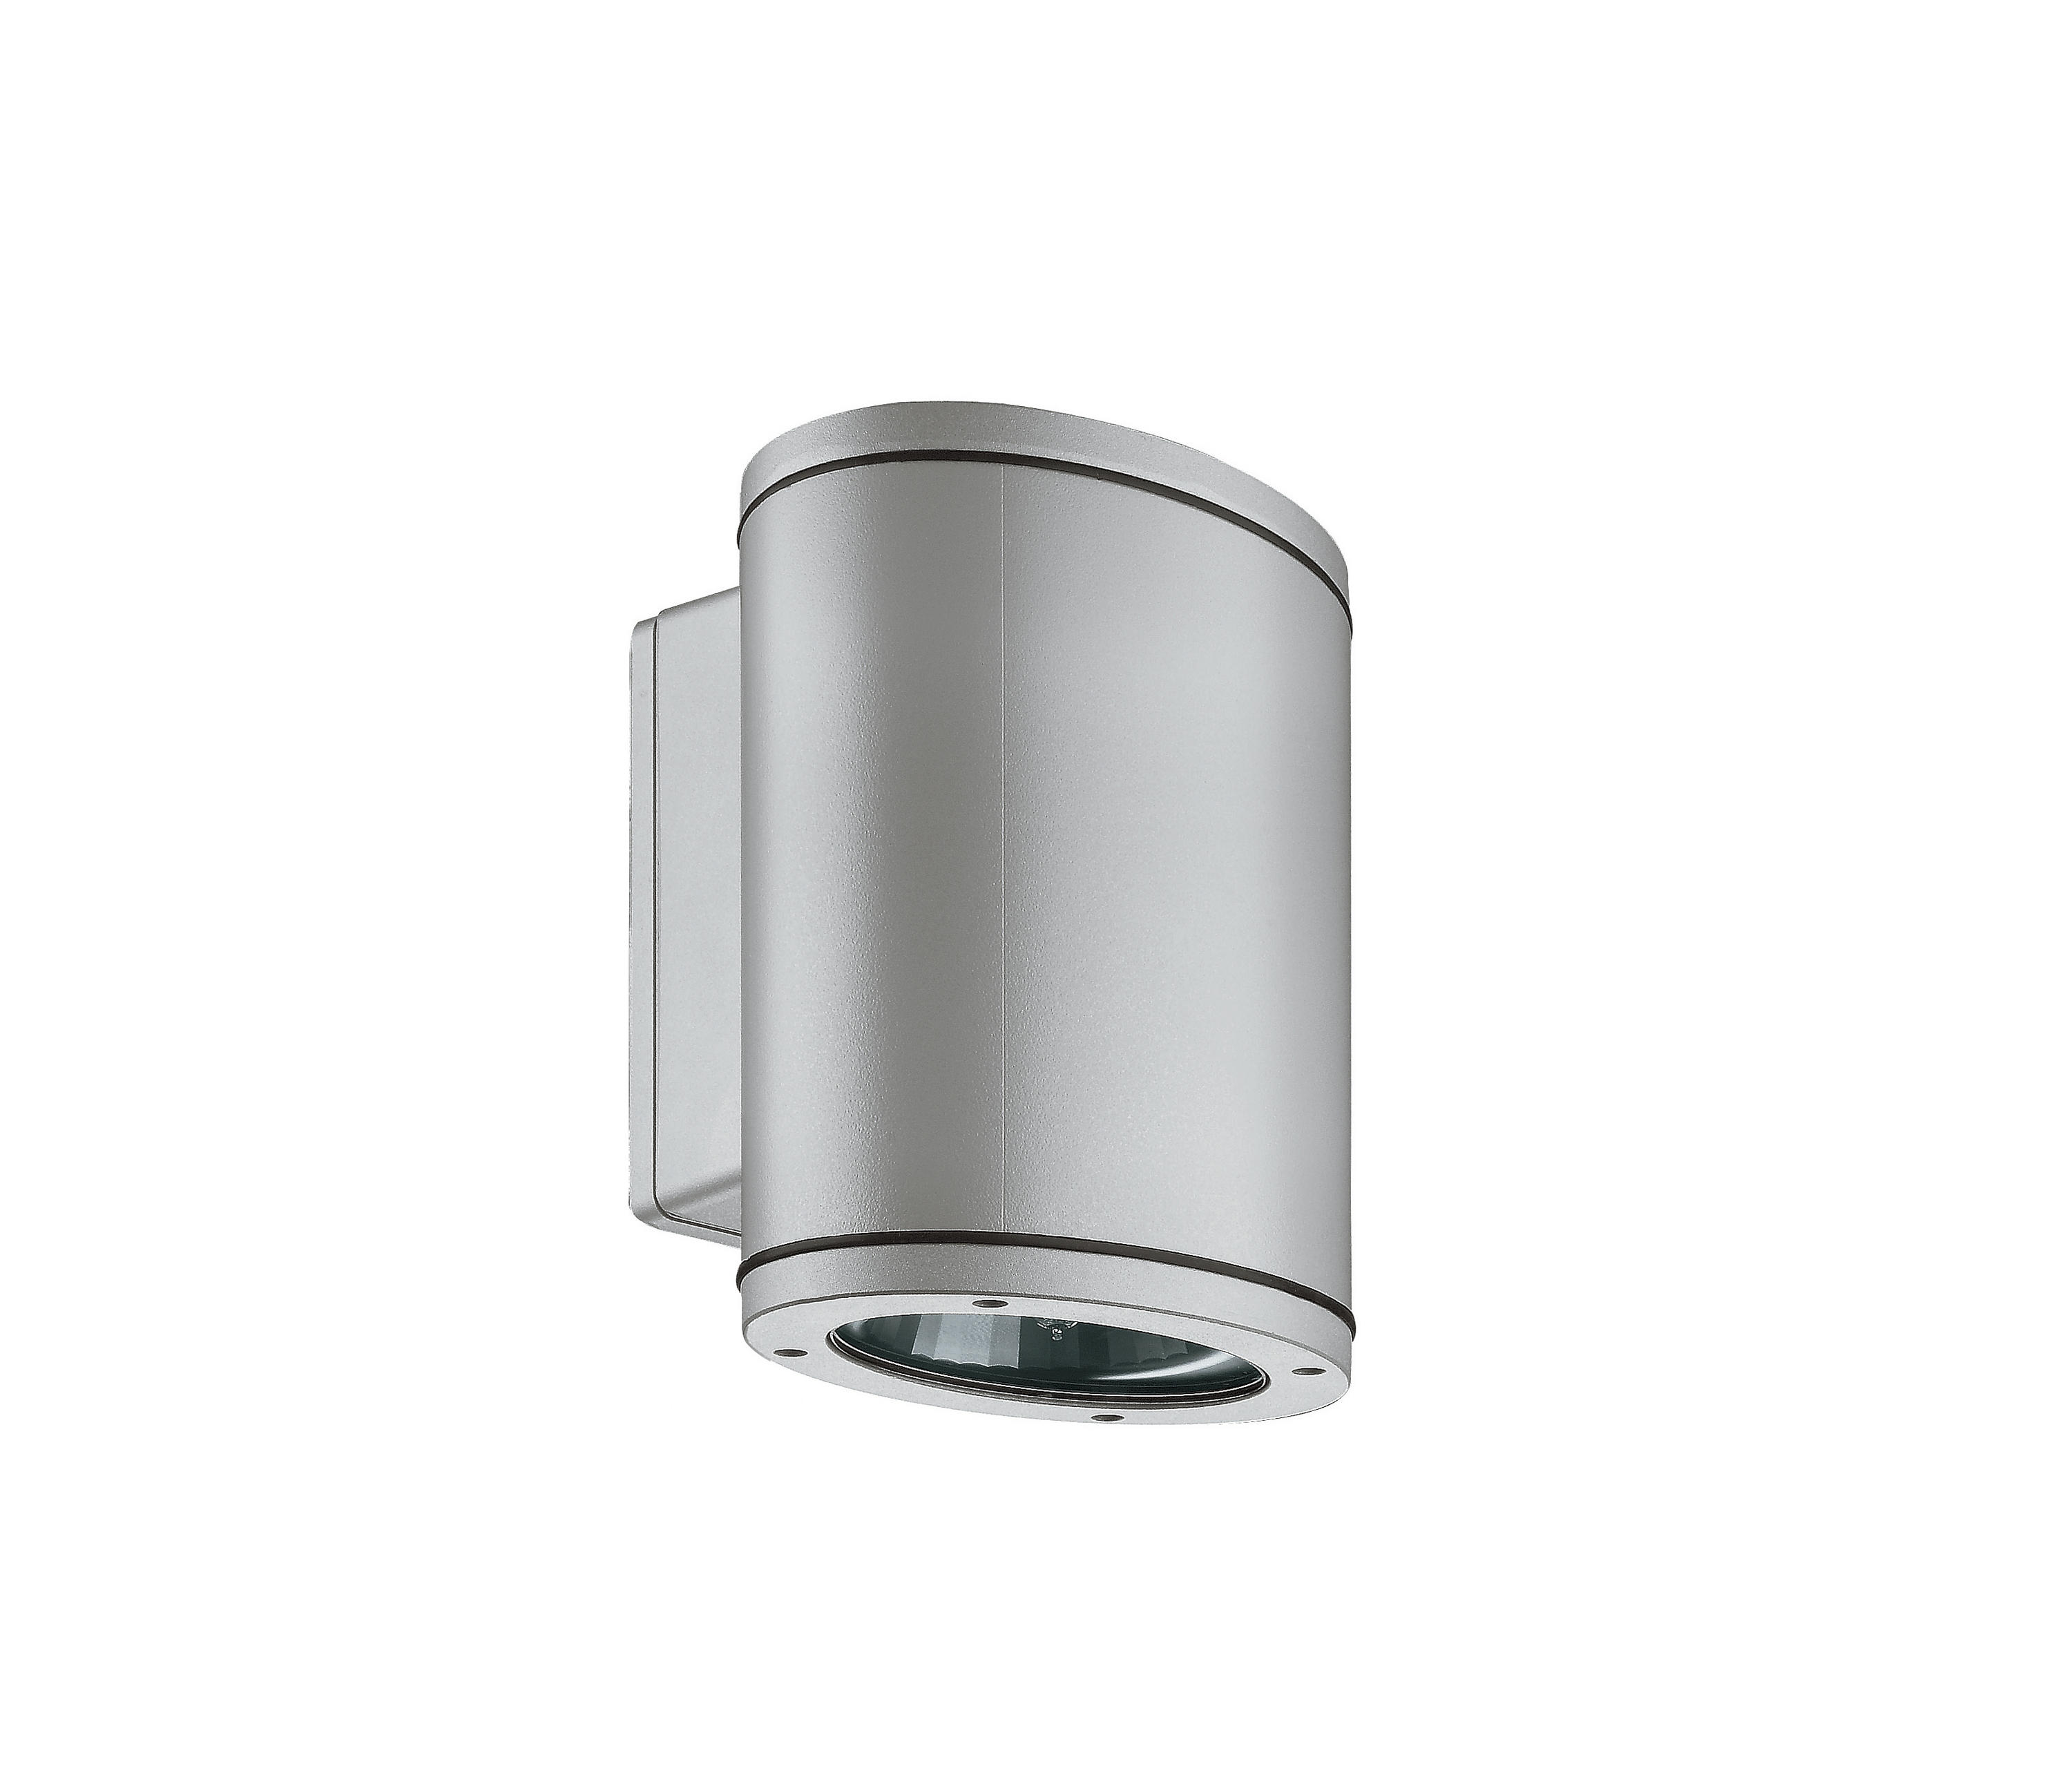 Ellis 1 Facade Lights From Arcluce Architonic